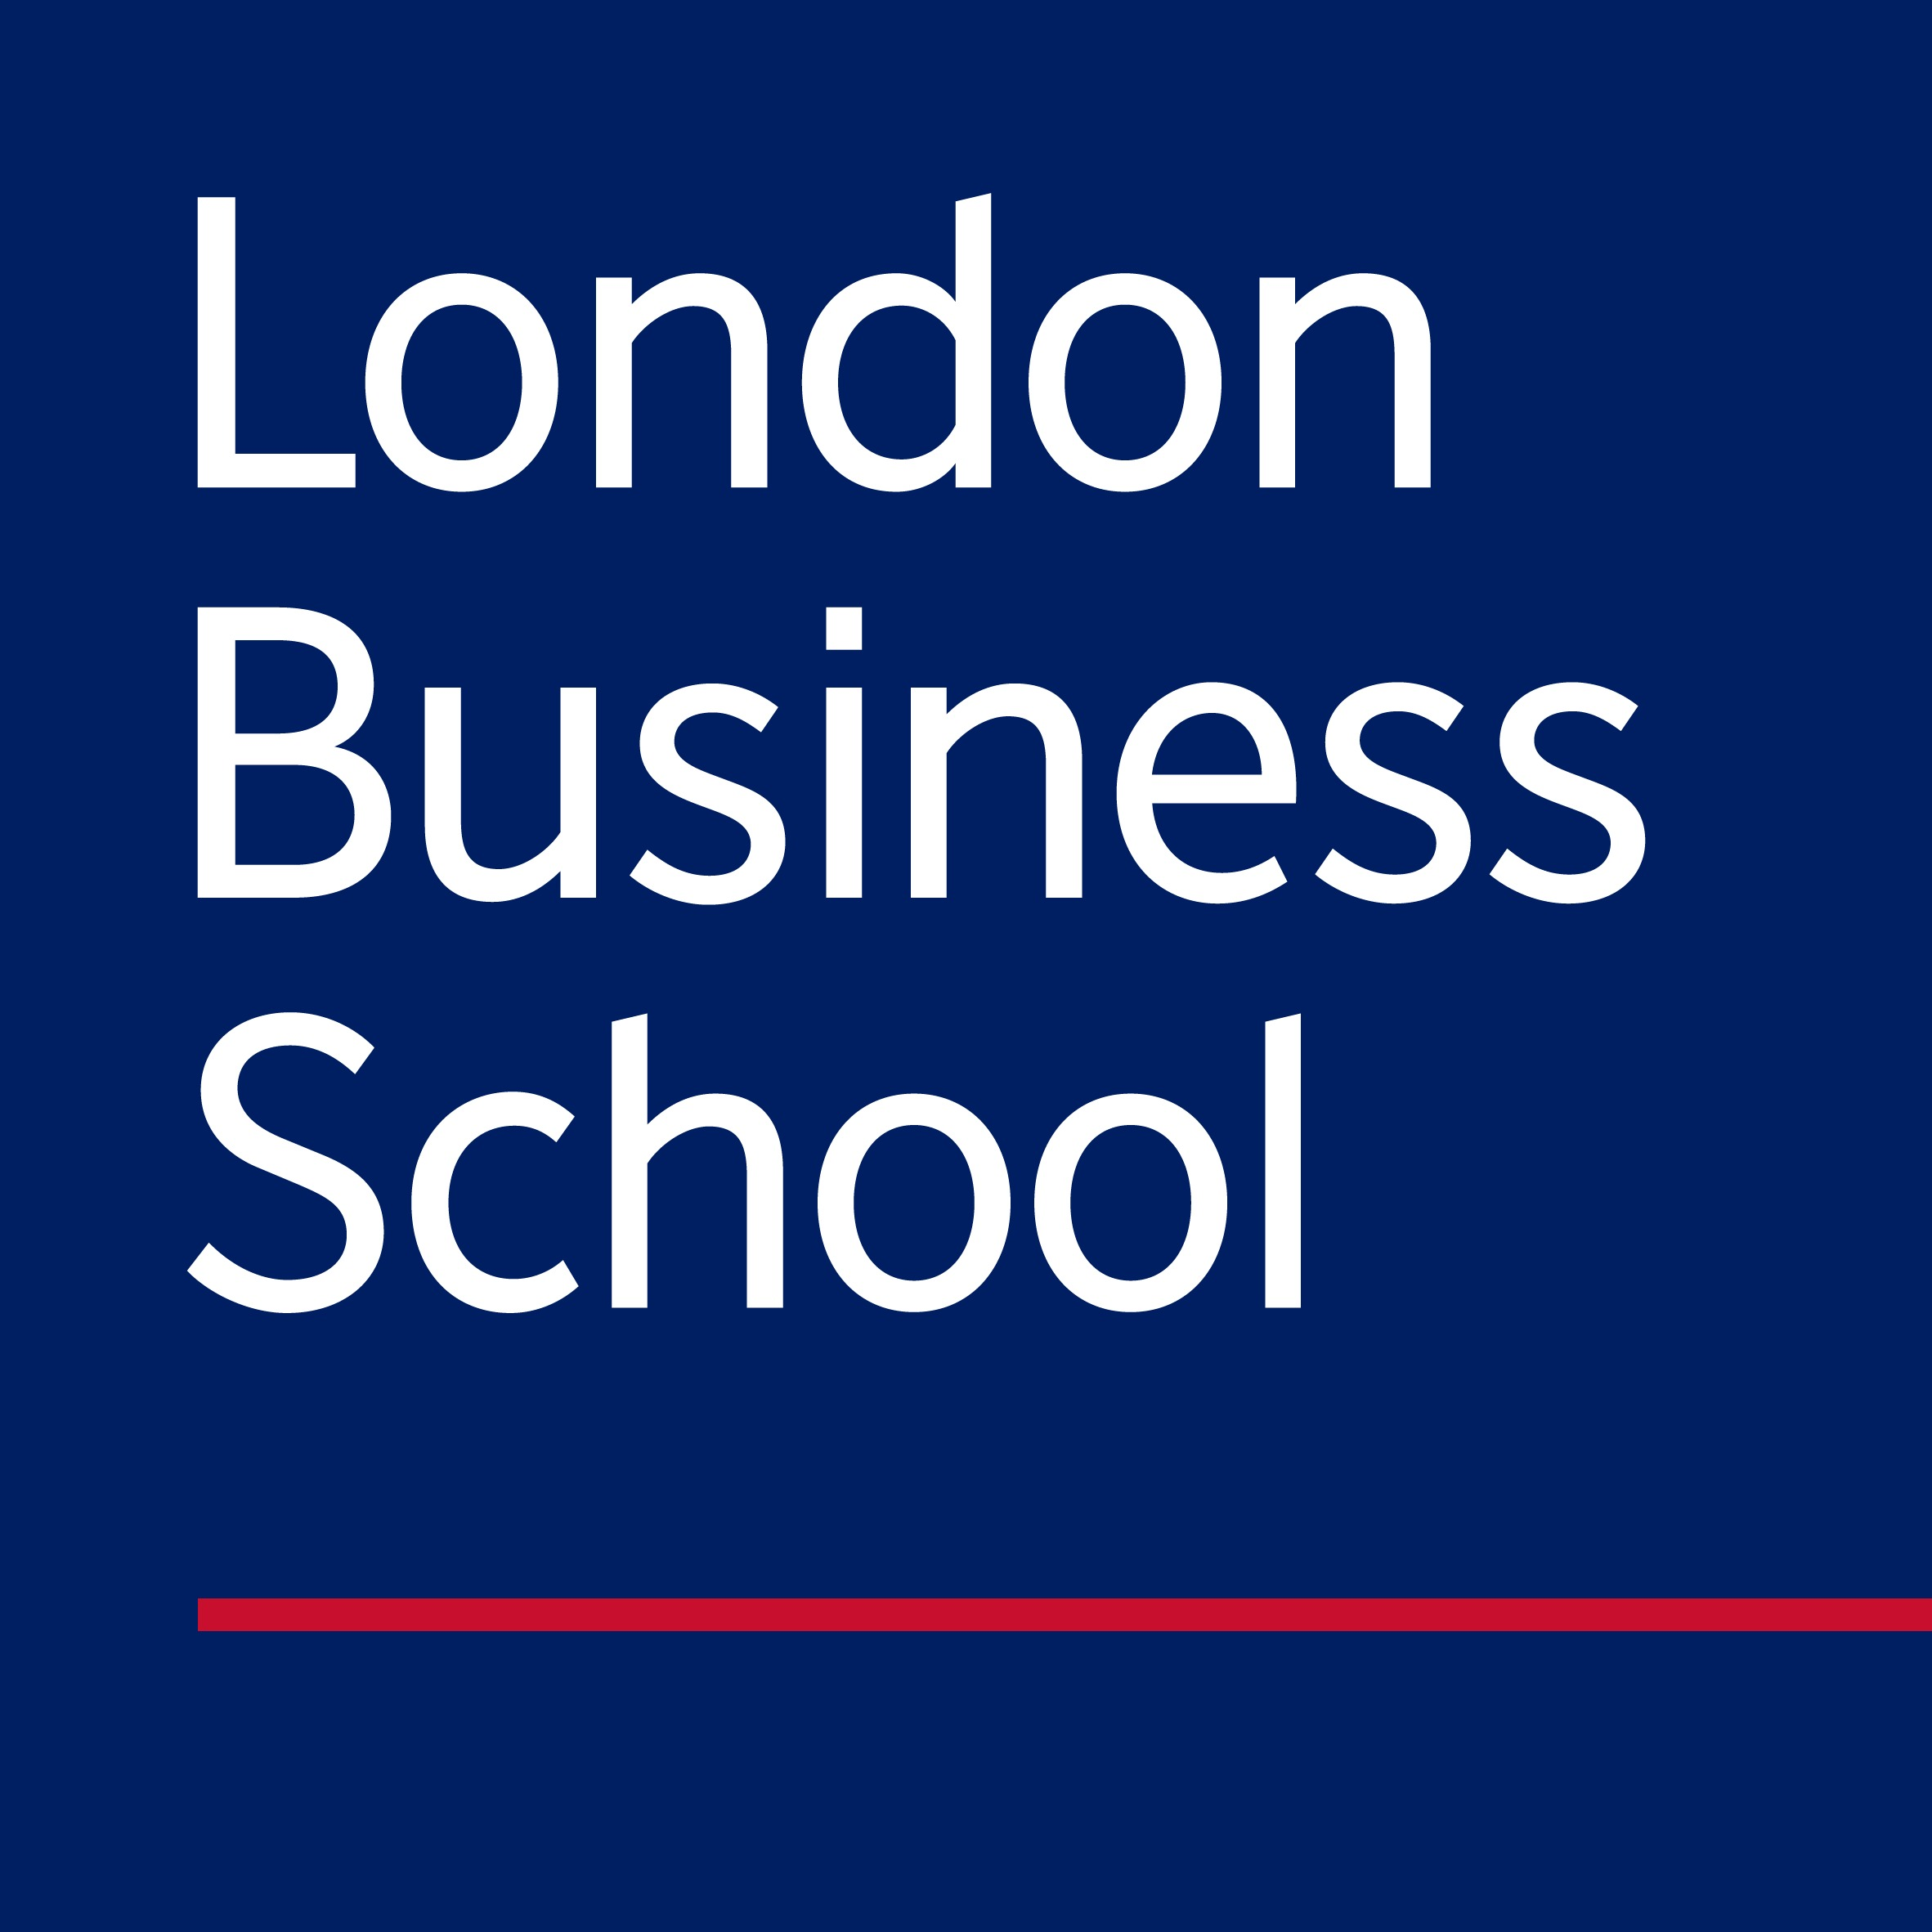 London Business School - Wikipedia